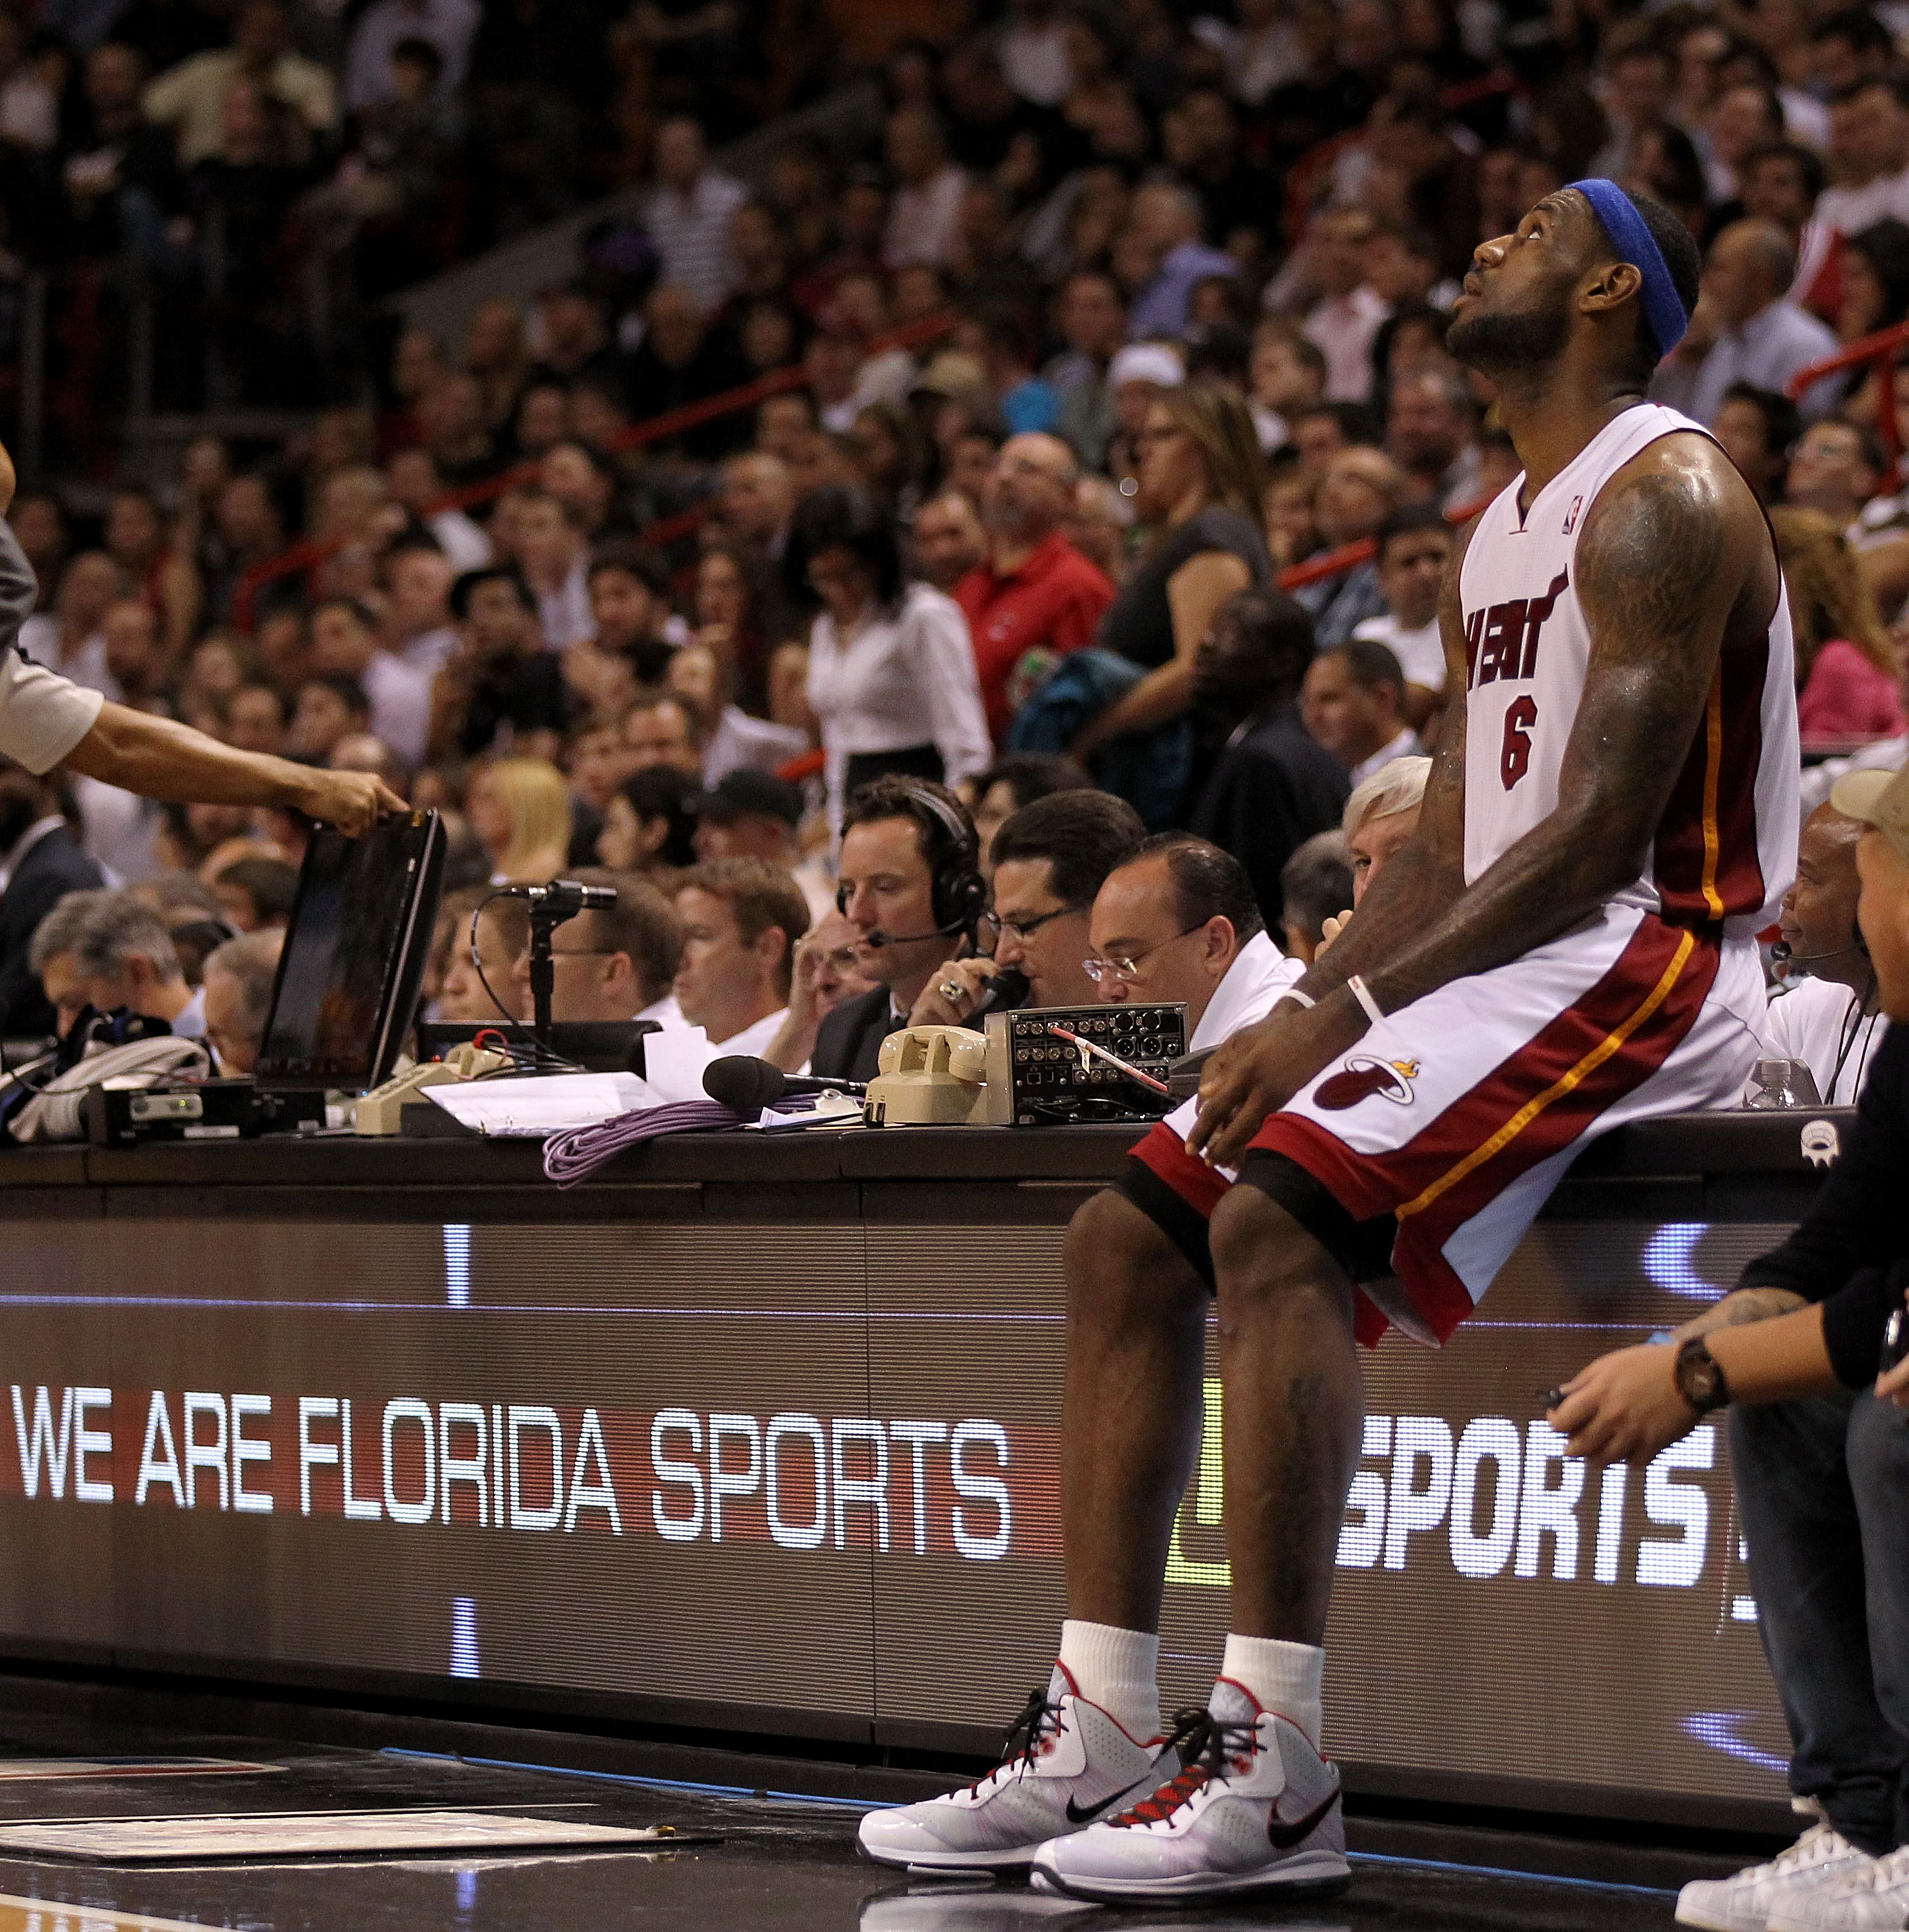 MIAMI, FL - JANUARY 04:  LeBron James #6 of the Miami Heat waits on the scorers table during a game against the Milwaukee Bucks at American Airlines Arena on January 4, 2011 in Miami, Florida. NOTE TO USER: User expressly acknowledges and agrees that, by